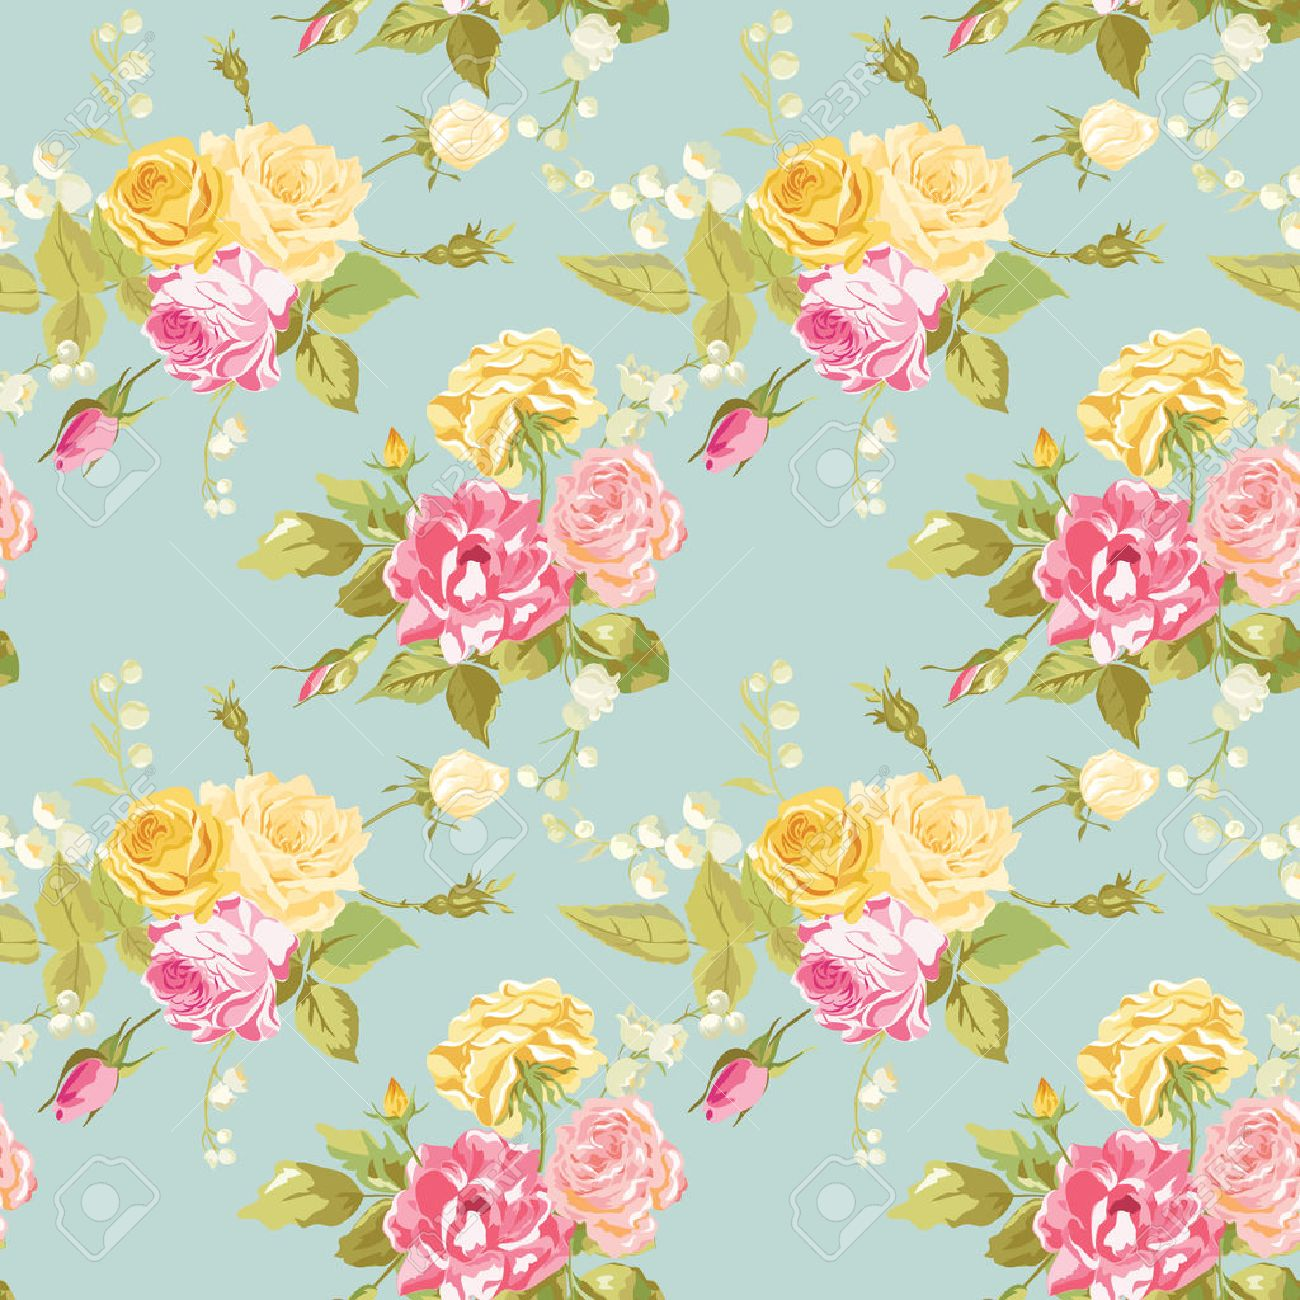 Shabby Chic Seamless Floral Shabby Chic Background Vintage Roses Flower